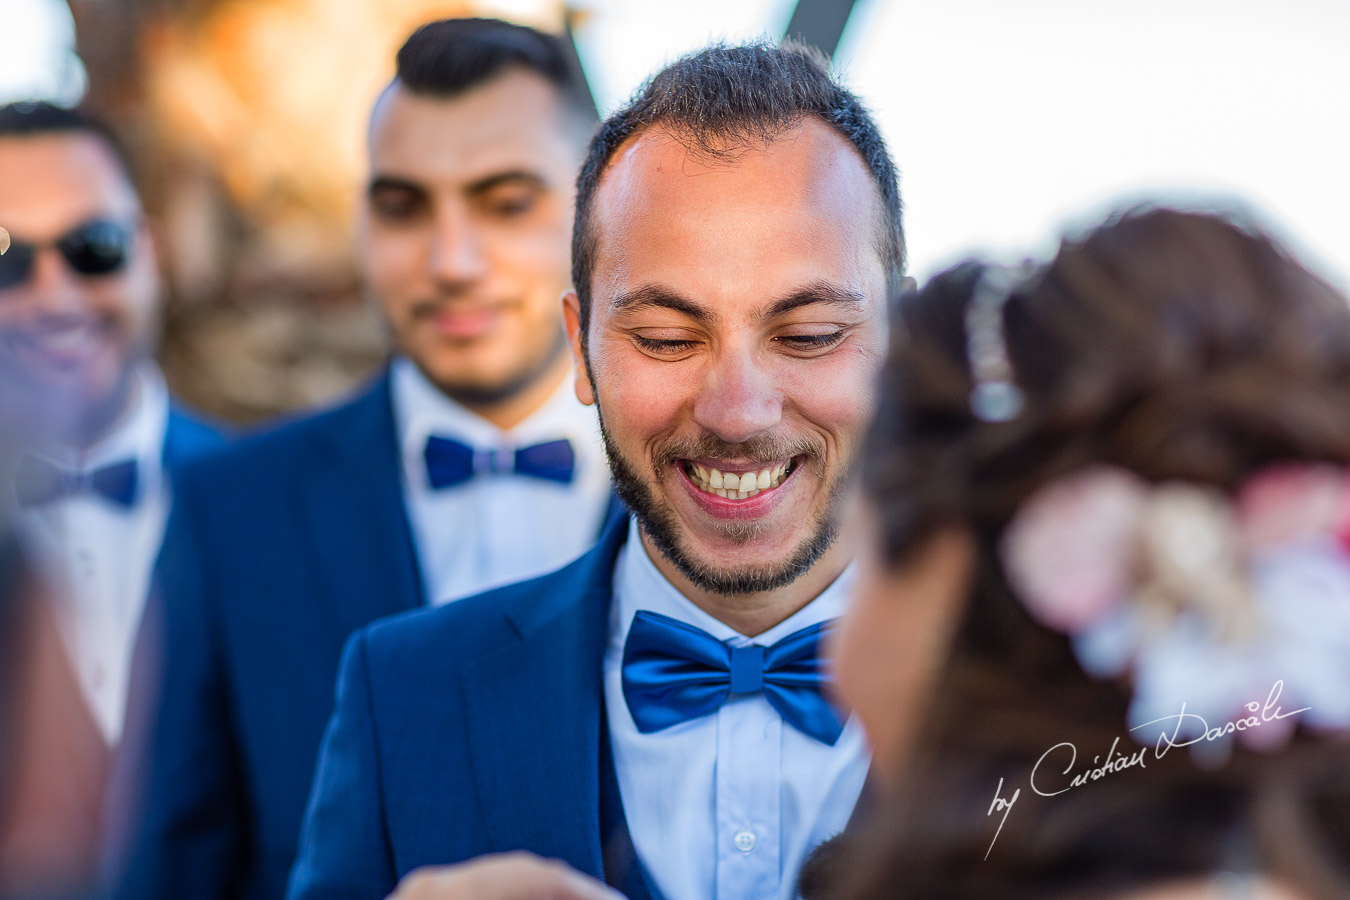 Genuine moments with the groom and the bride during the ceremony, as part of an Exclusive Wedding photography at Grand Resort Limassol, captured by Cyprus Wedding Photographer Cristian Dascalu.